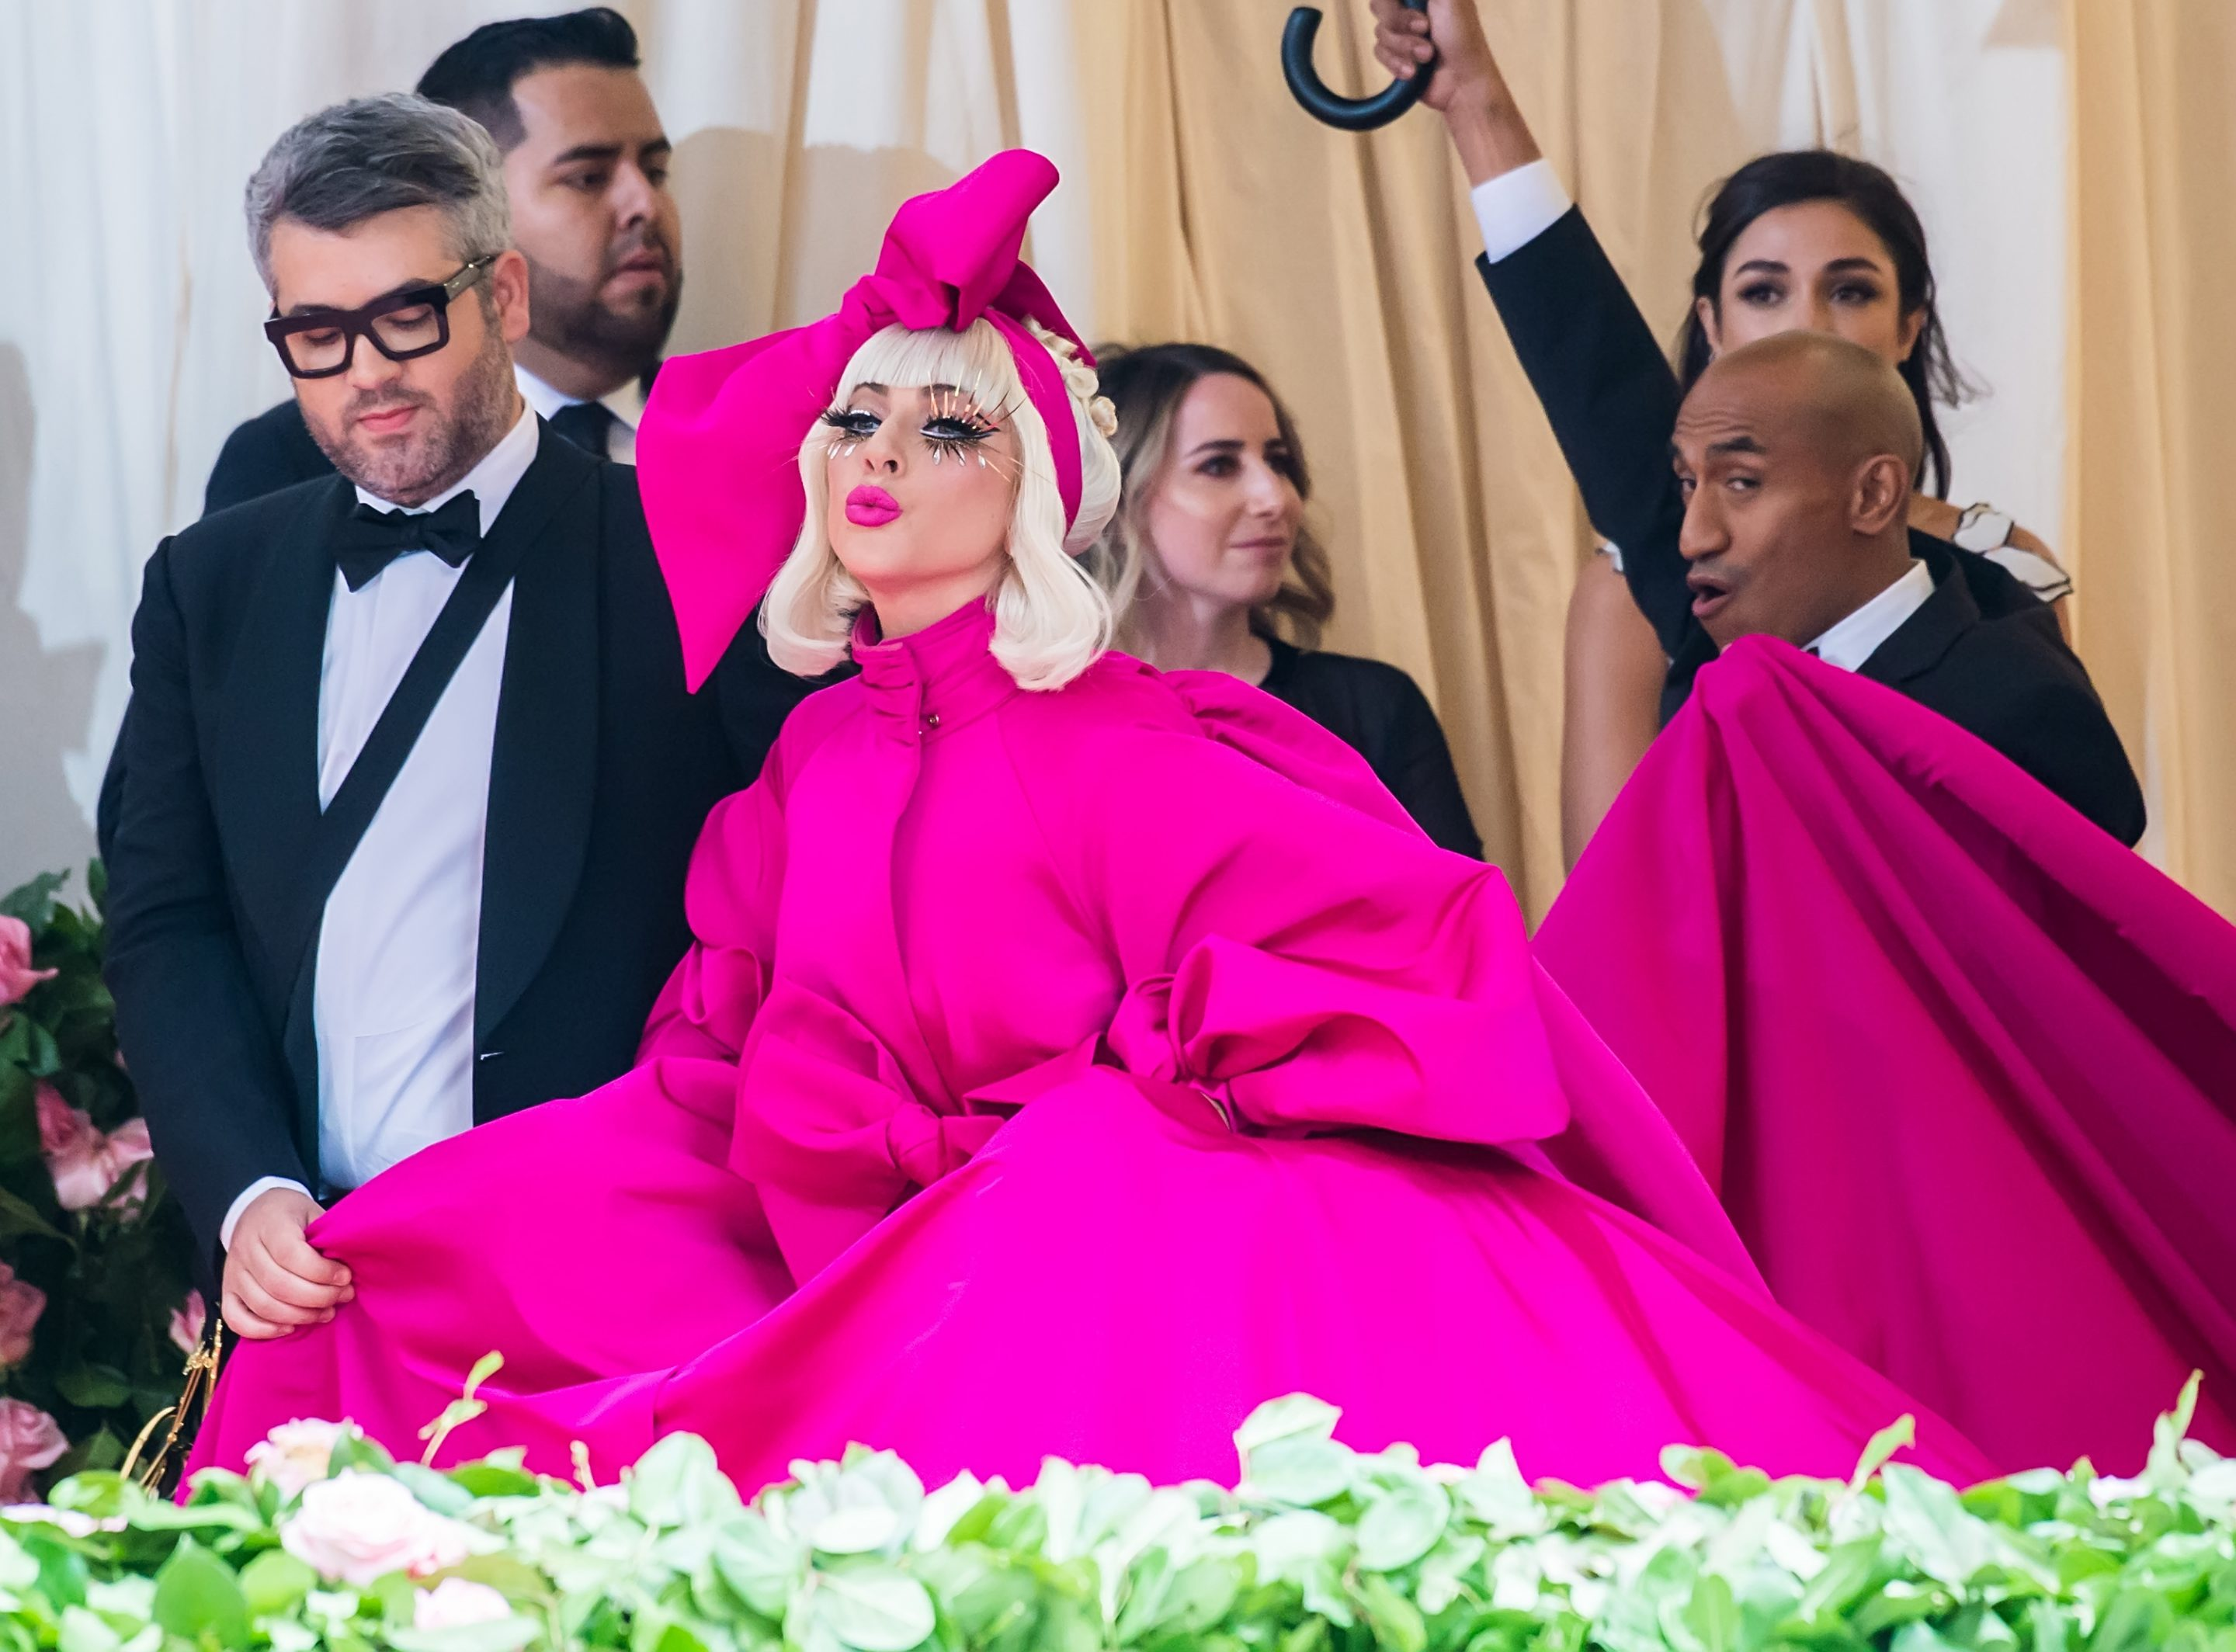 Pre-orders for Lady Gaga's make-up line on Amazon start July 15. The pop singer is pictured with her fashion designer Brandon Maxwell at the May 6, 2019, Metropolitan Museum of Art Costume Institute gala.